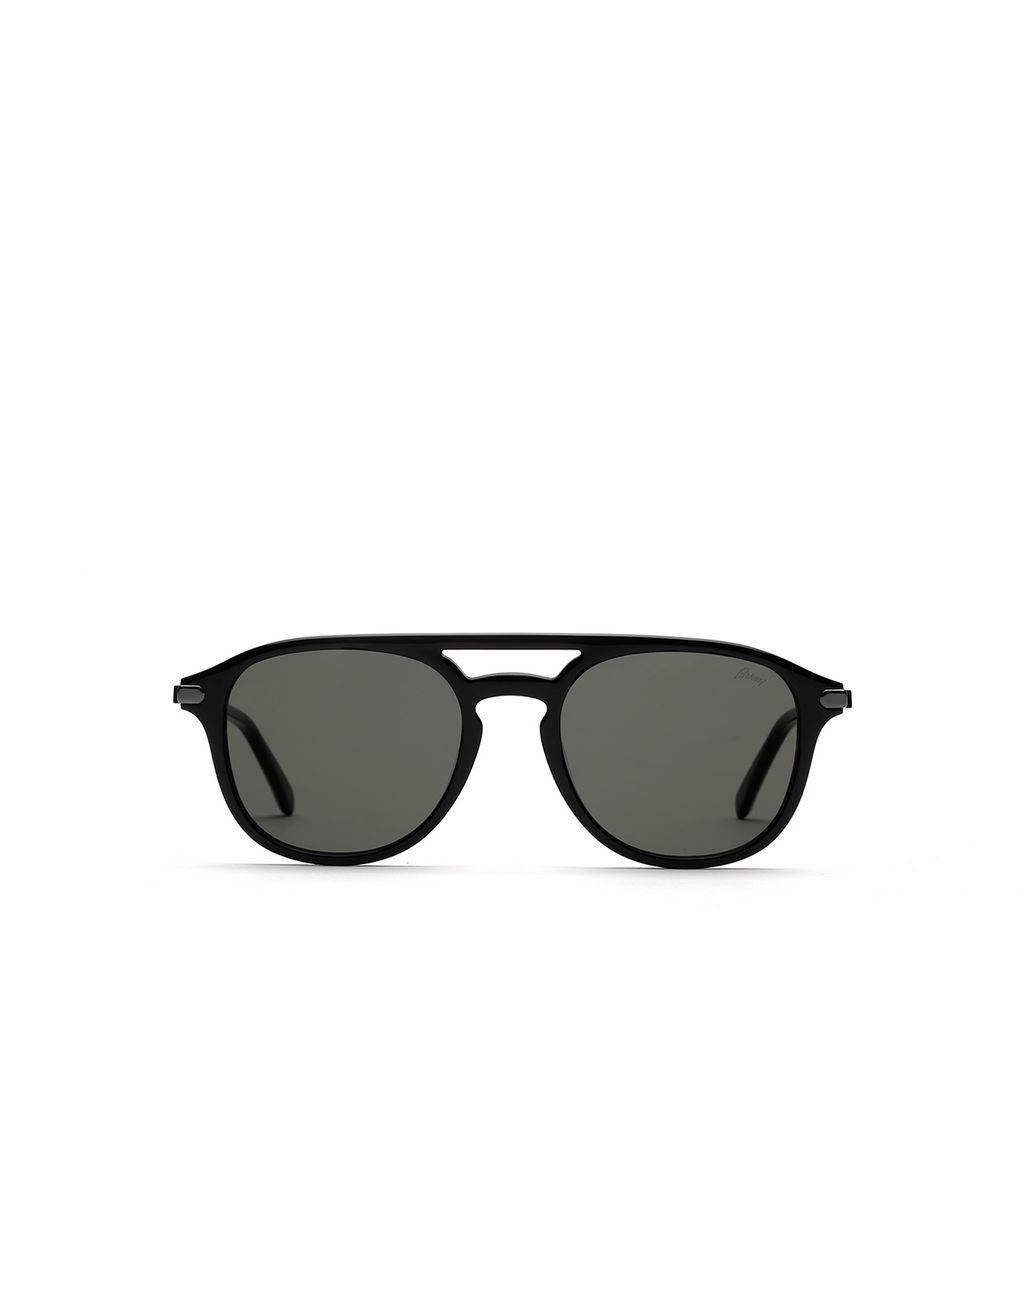 BRIONI Black Pantos Shape Sunglasses With Gray Lenses Sunglasses Man f